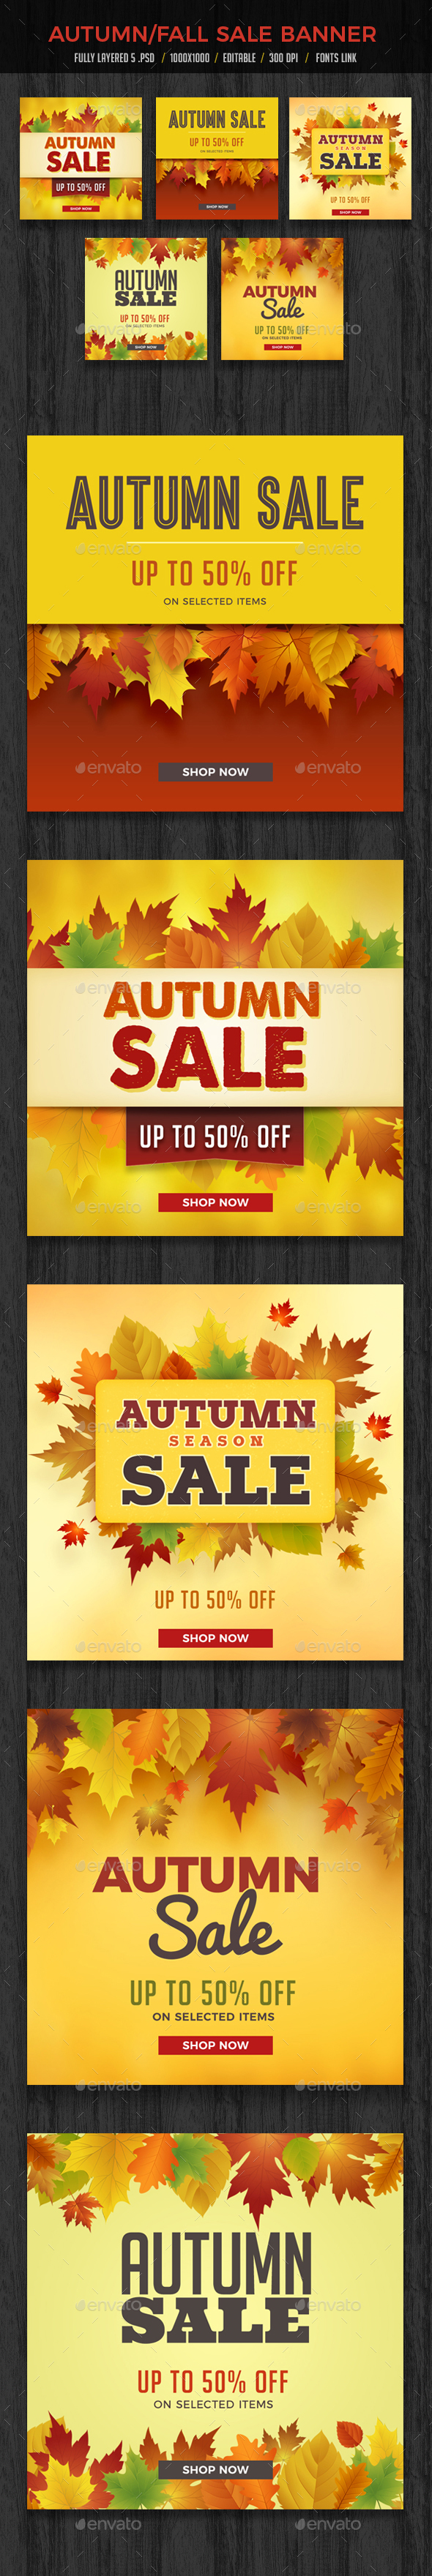 Autumn Fall Sale Banners Set - Banners & Ads Web Elements